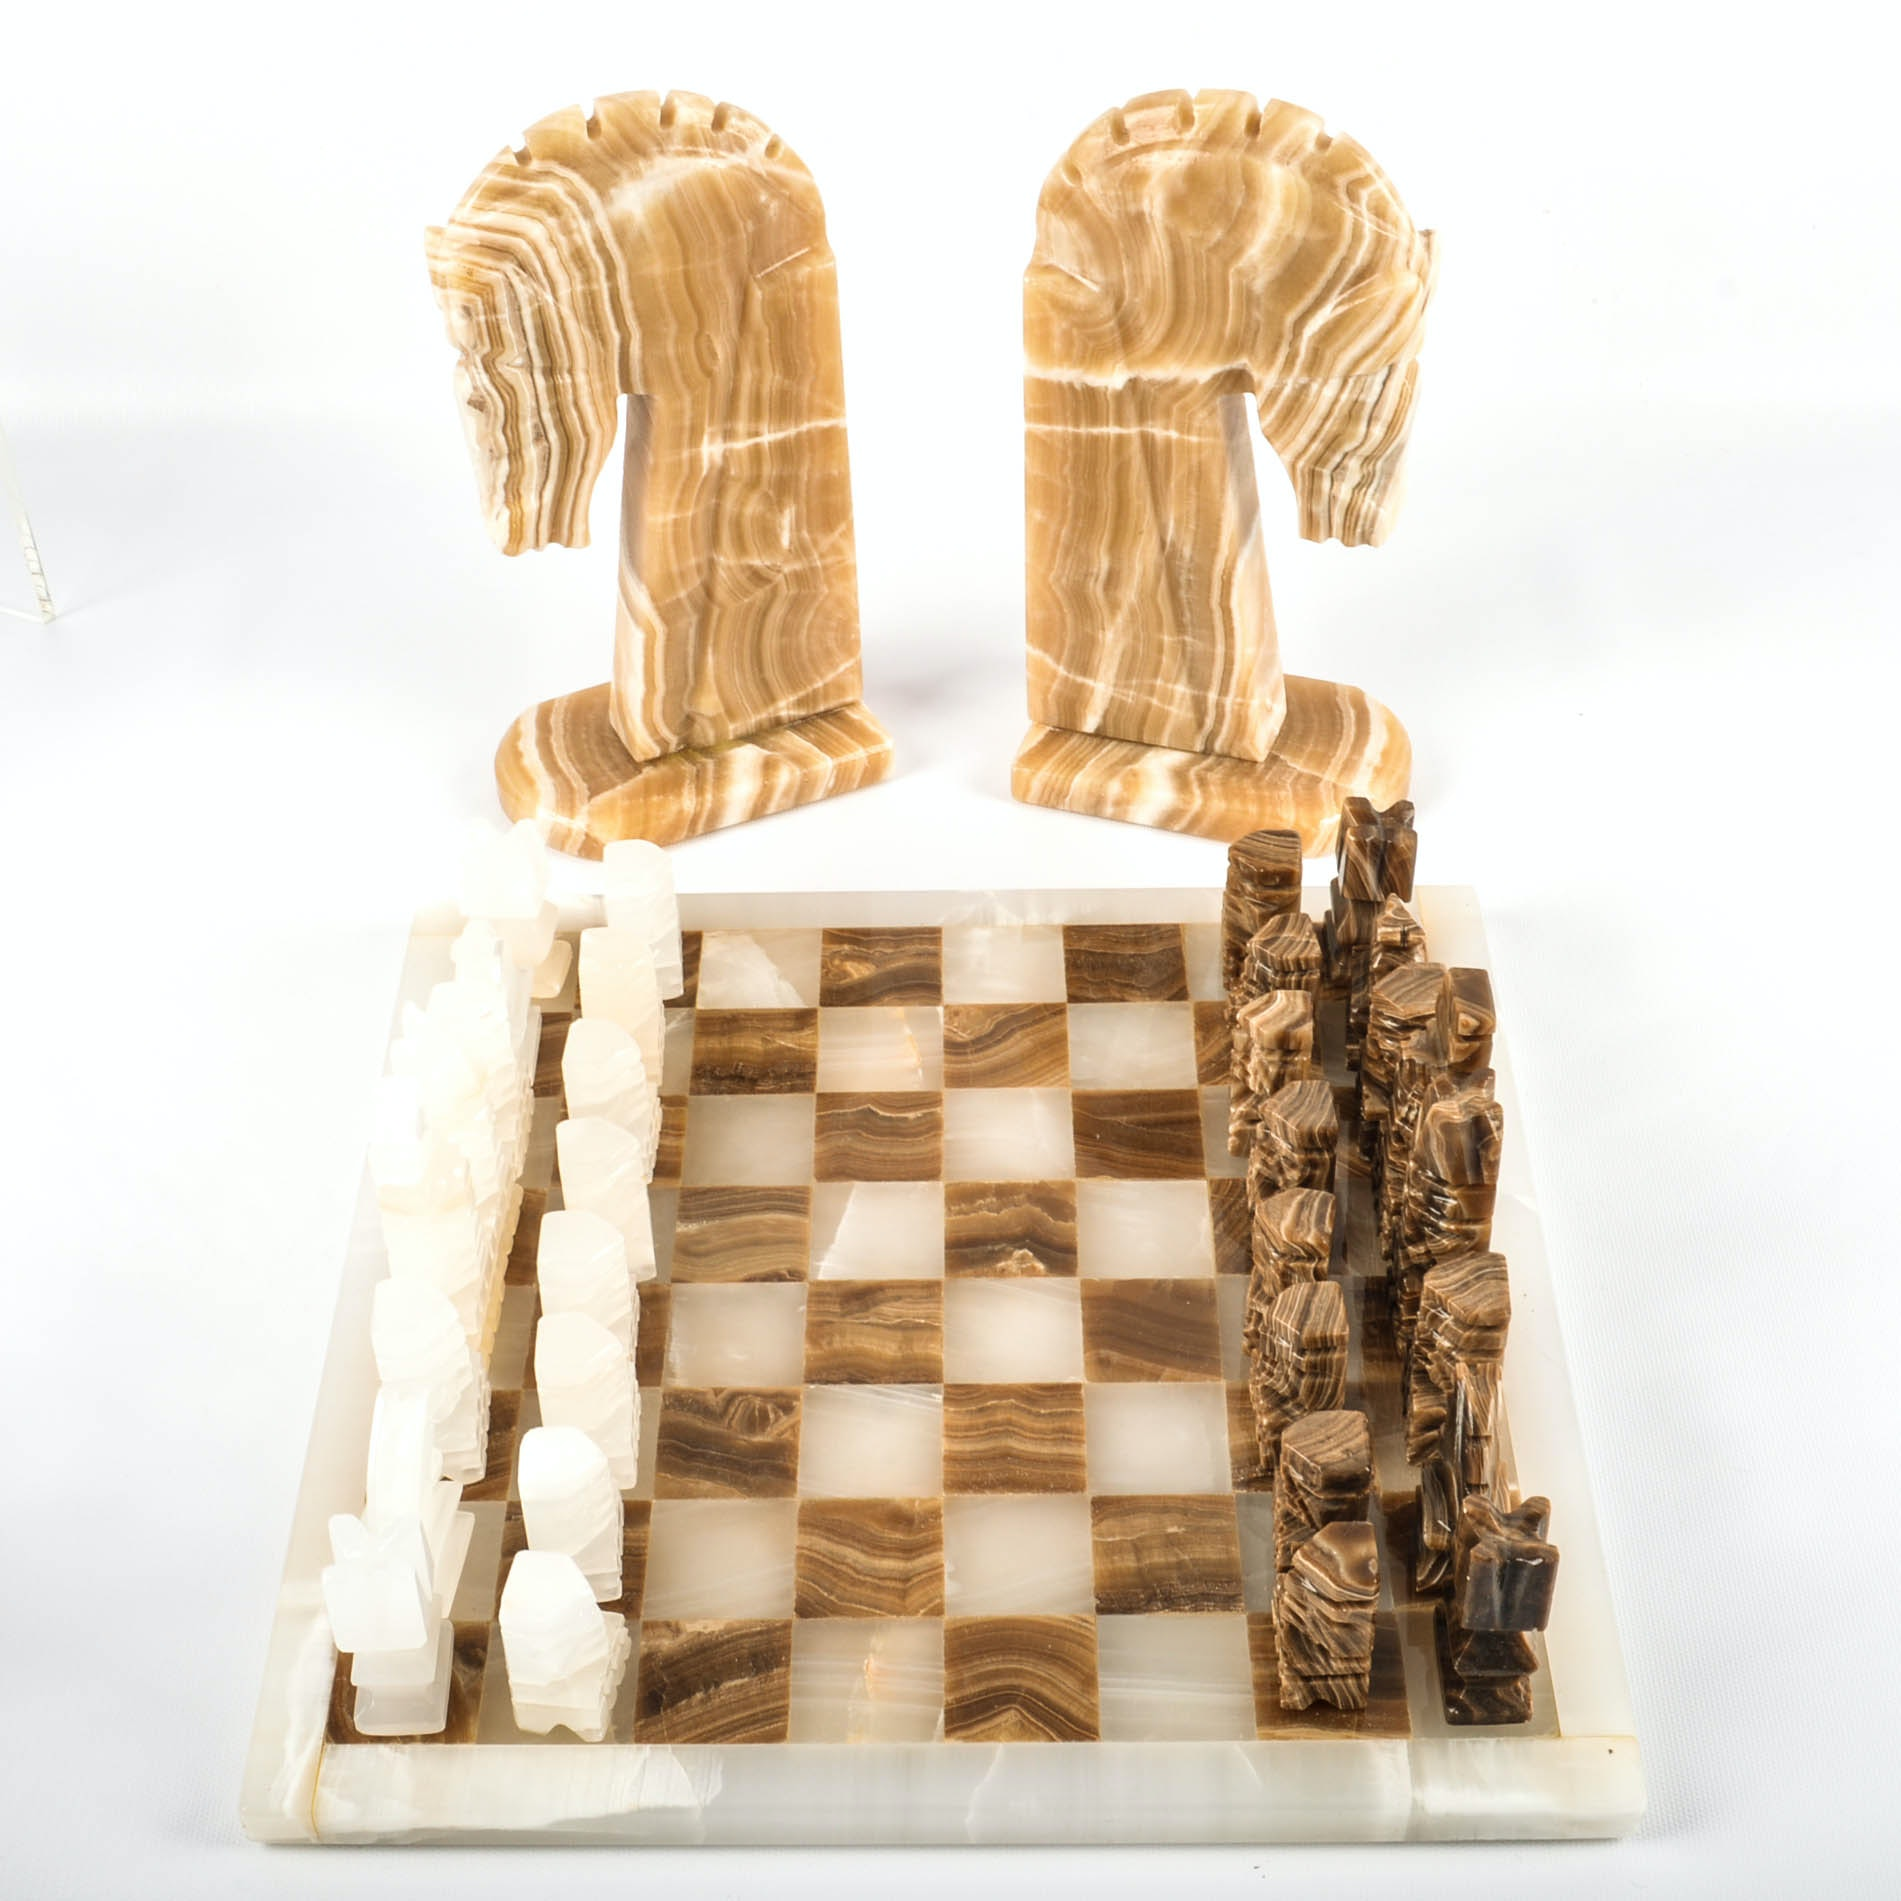 Carved Natural Stone Chess Set and Horse Head Bookends